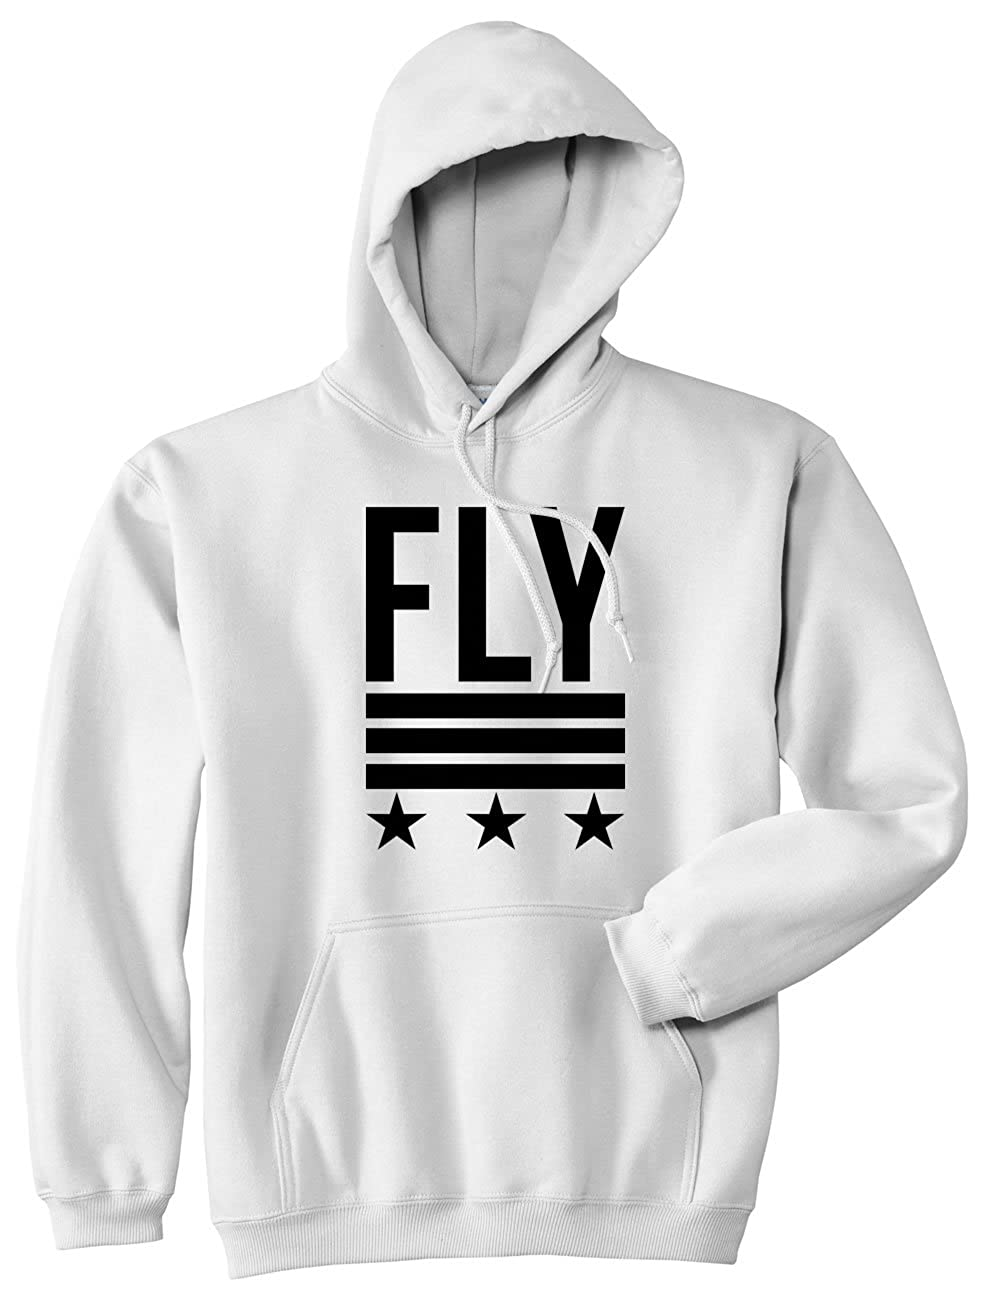 Kings Of NY Fly Stars Air Force USA America War Kids Boys Pullover Hoody Sweatshirt